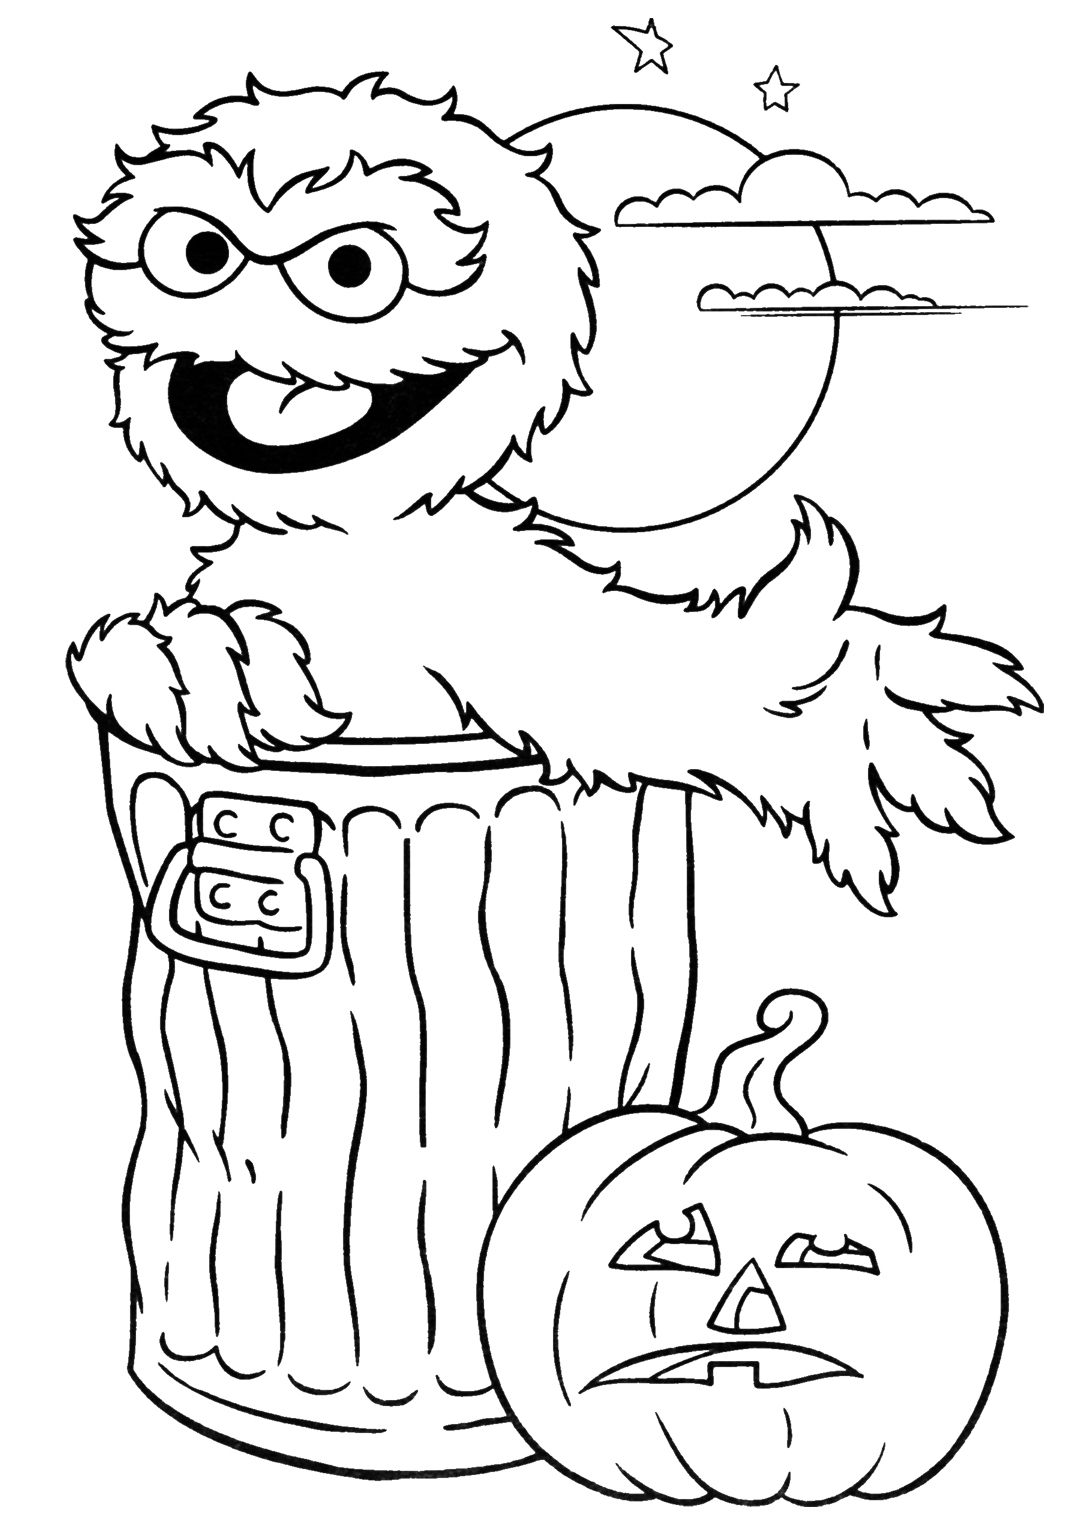 coloring pages kids halloween | HALLOWEEN COLORINGS